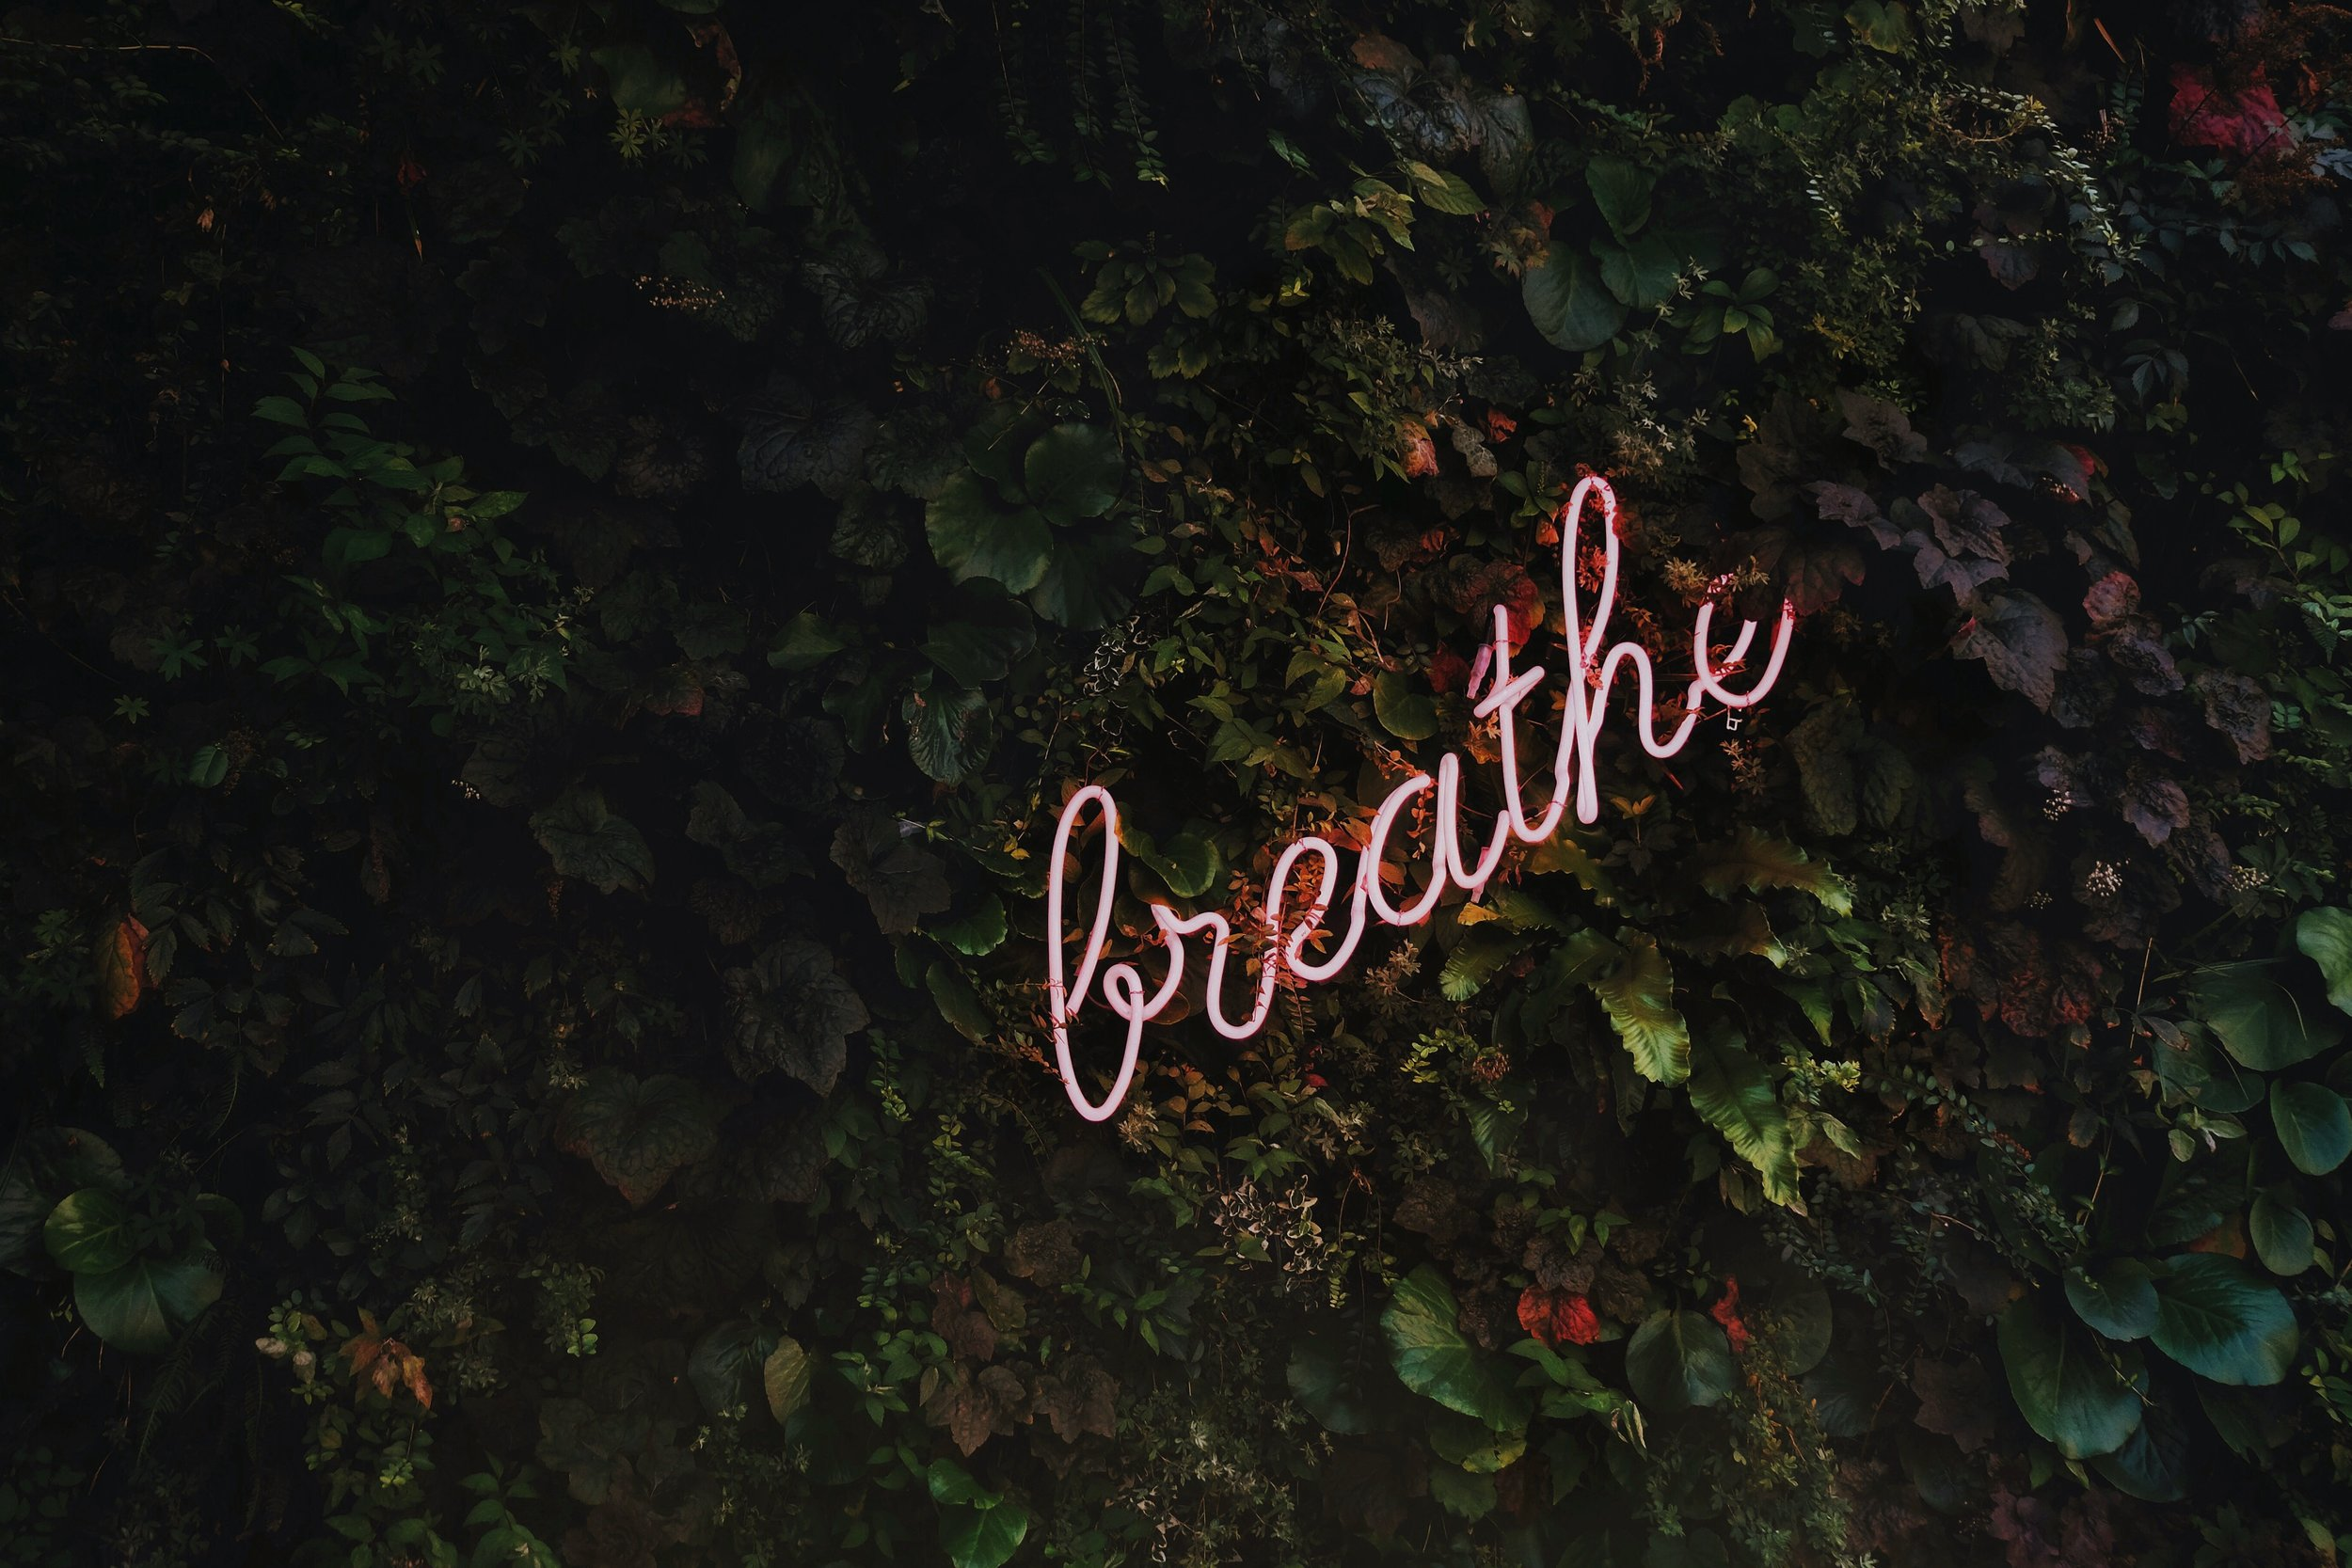 Health and Well-Being - Sometimes, focusing on this, first, allows a successful career and relationship(s) to become the byproduct. Mental, physical, emotional, and spiritual stability will help drive our decision-making in other areas of our lives. Make time to breathe.